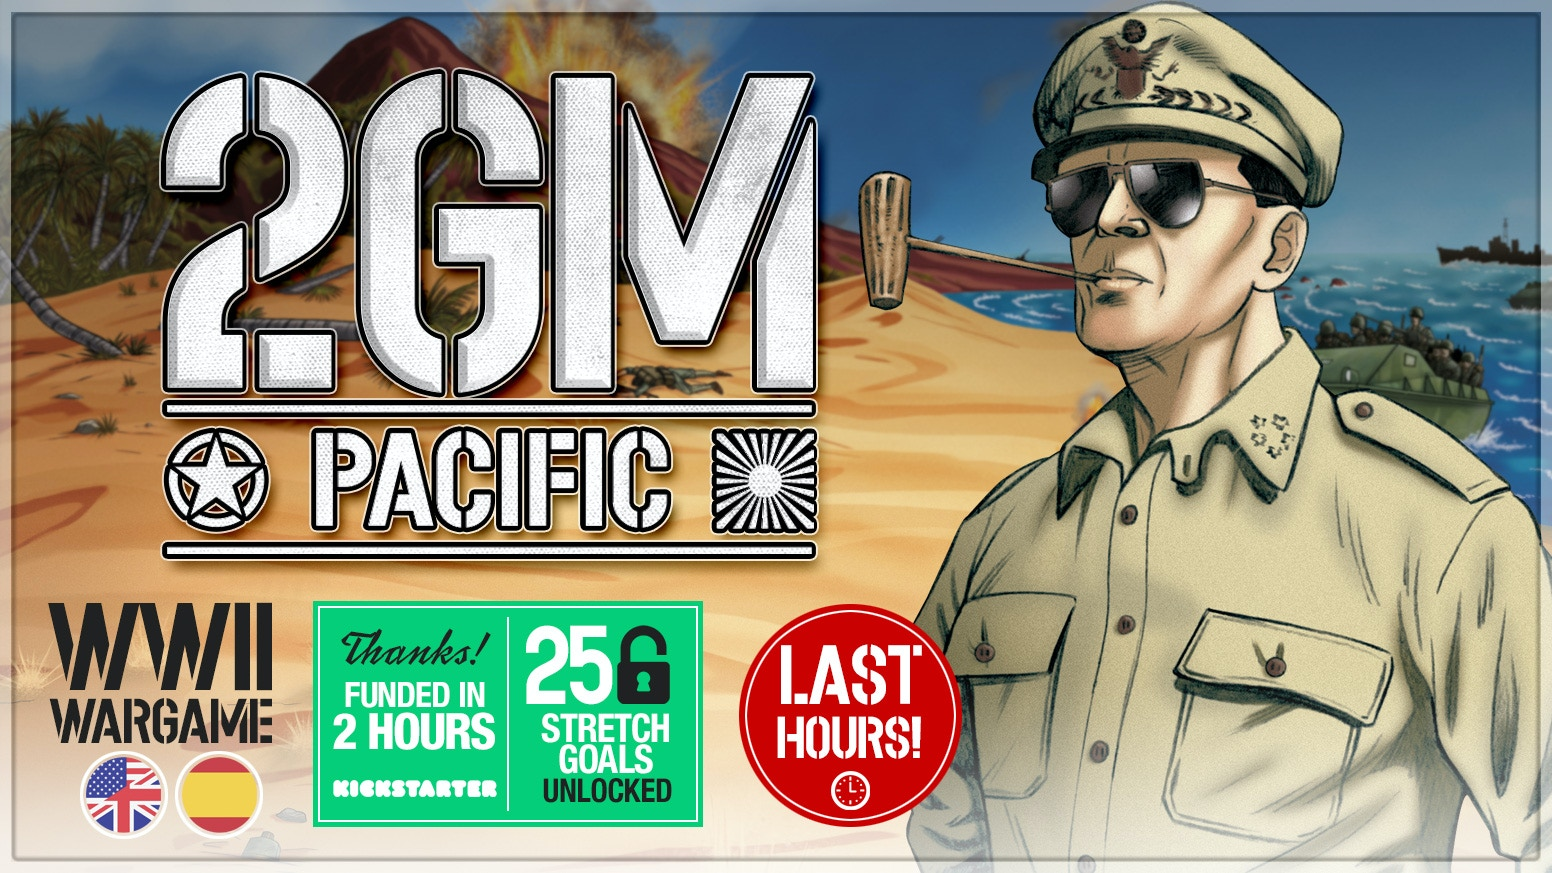 This great WWII wargame is back: 2GM Pacific is a standalone title, fully compatible with the 2GM Tactics series games and expansions.